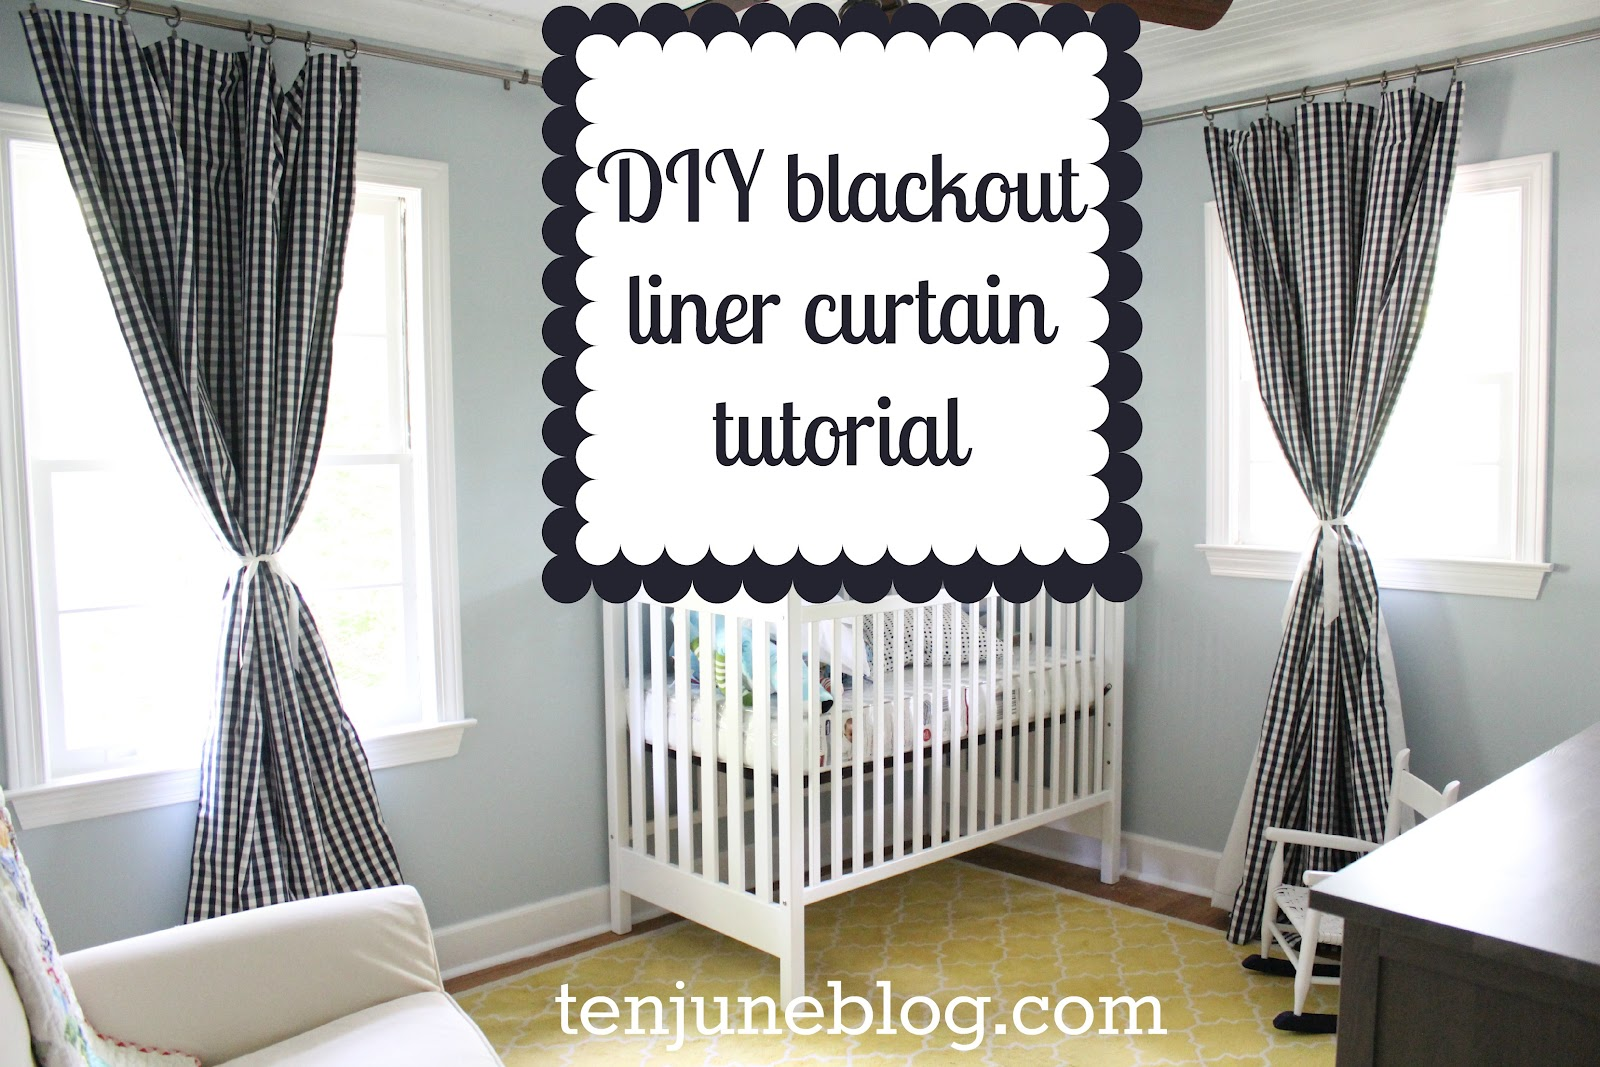 Lovely DIY Blackout Curtain Tutorial Photo